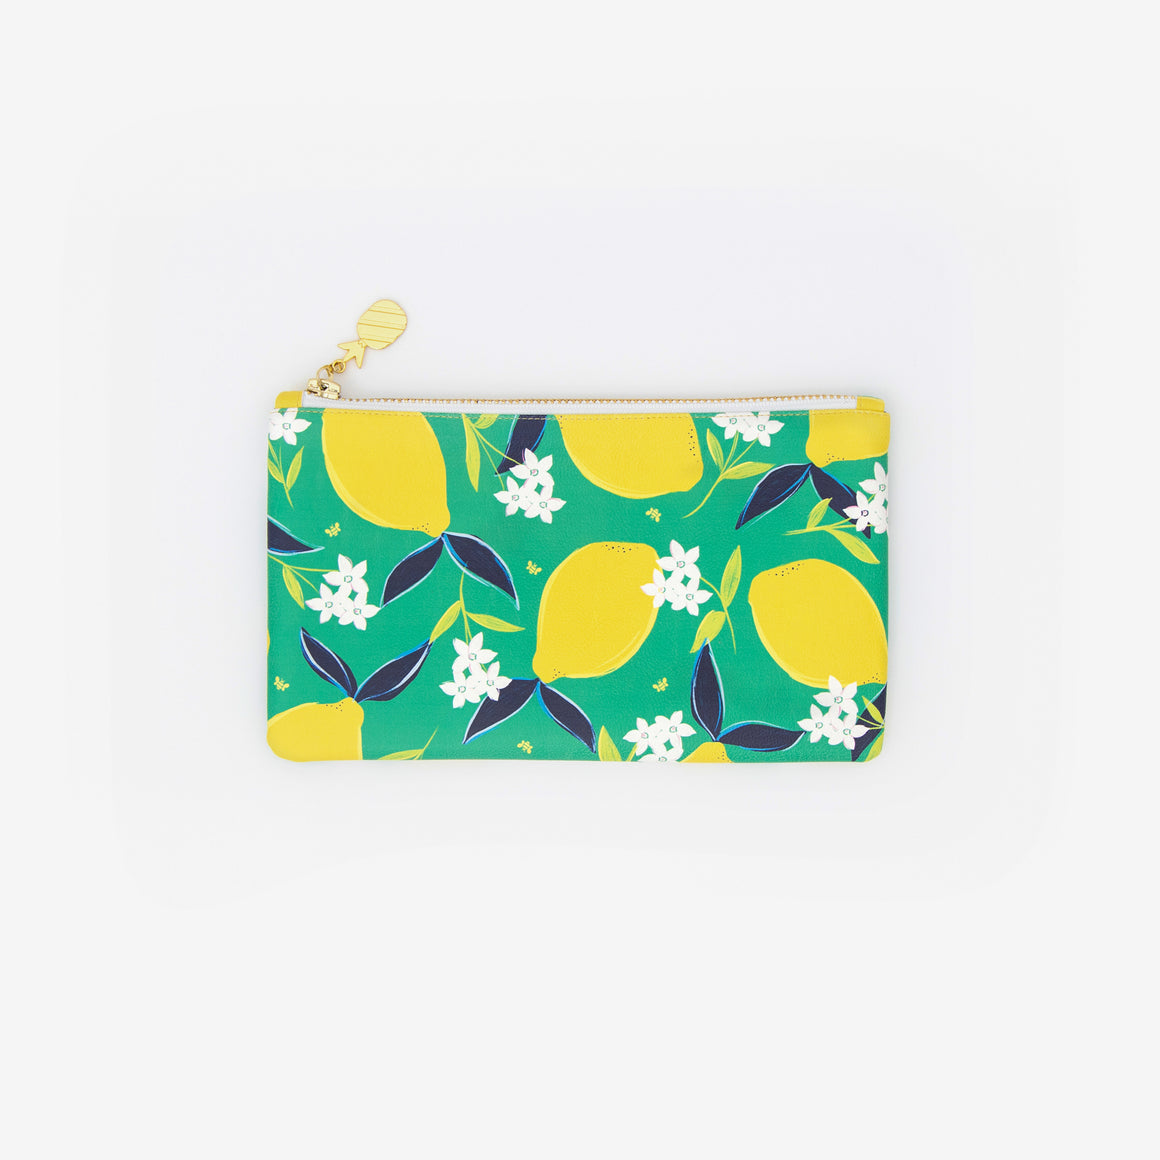 featured: CITRUS PENCIL POUCH